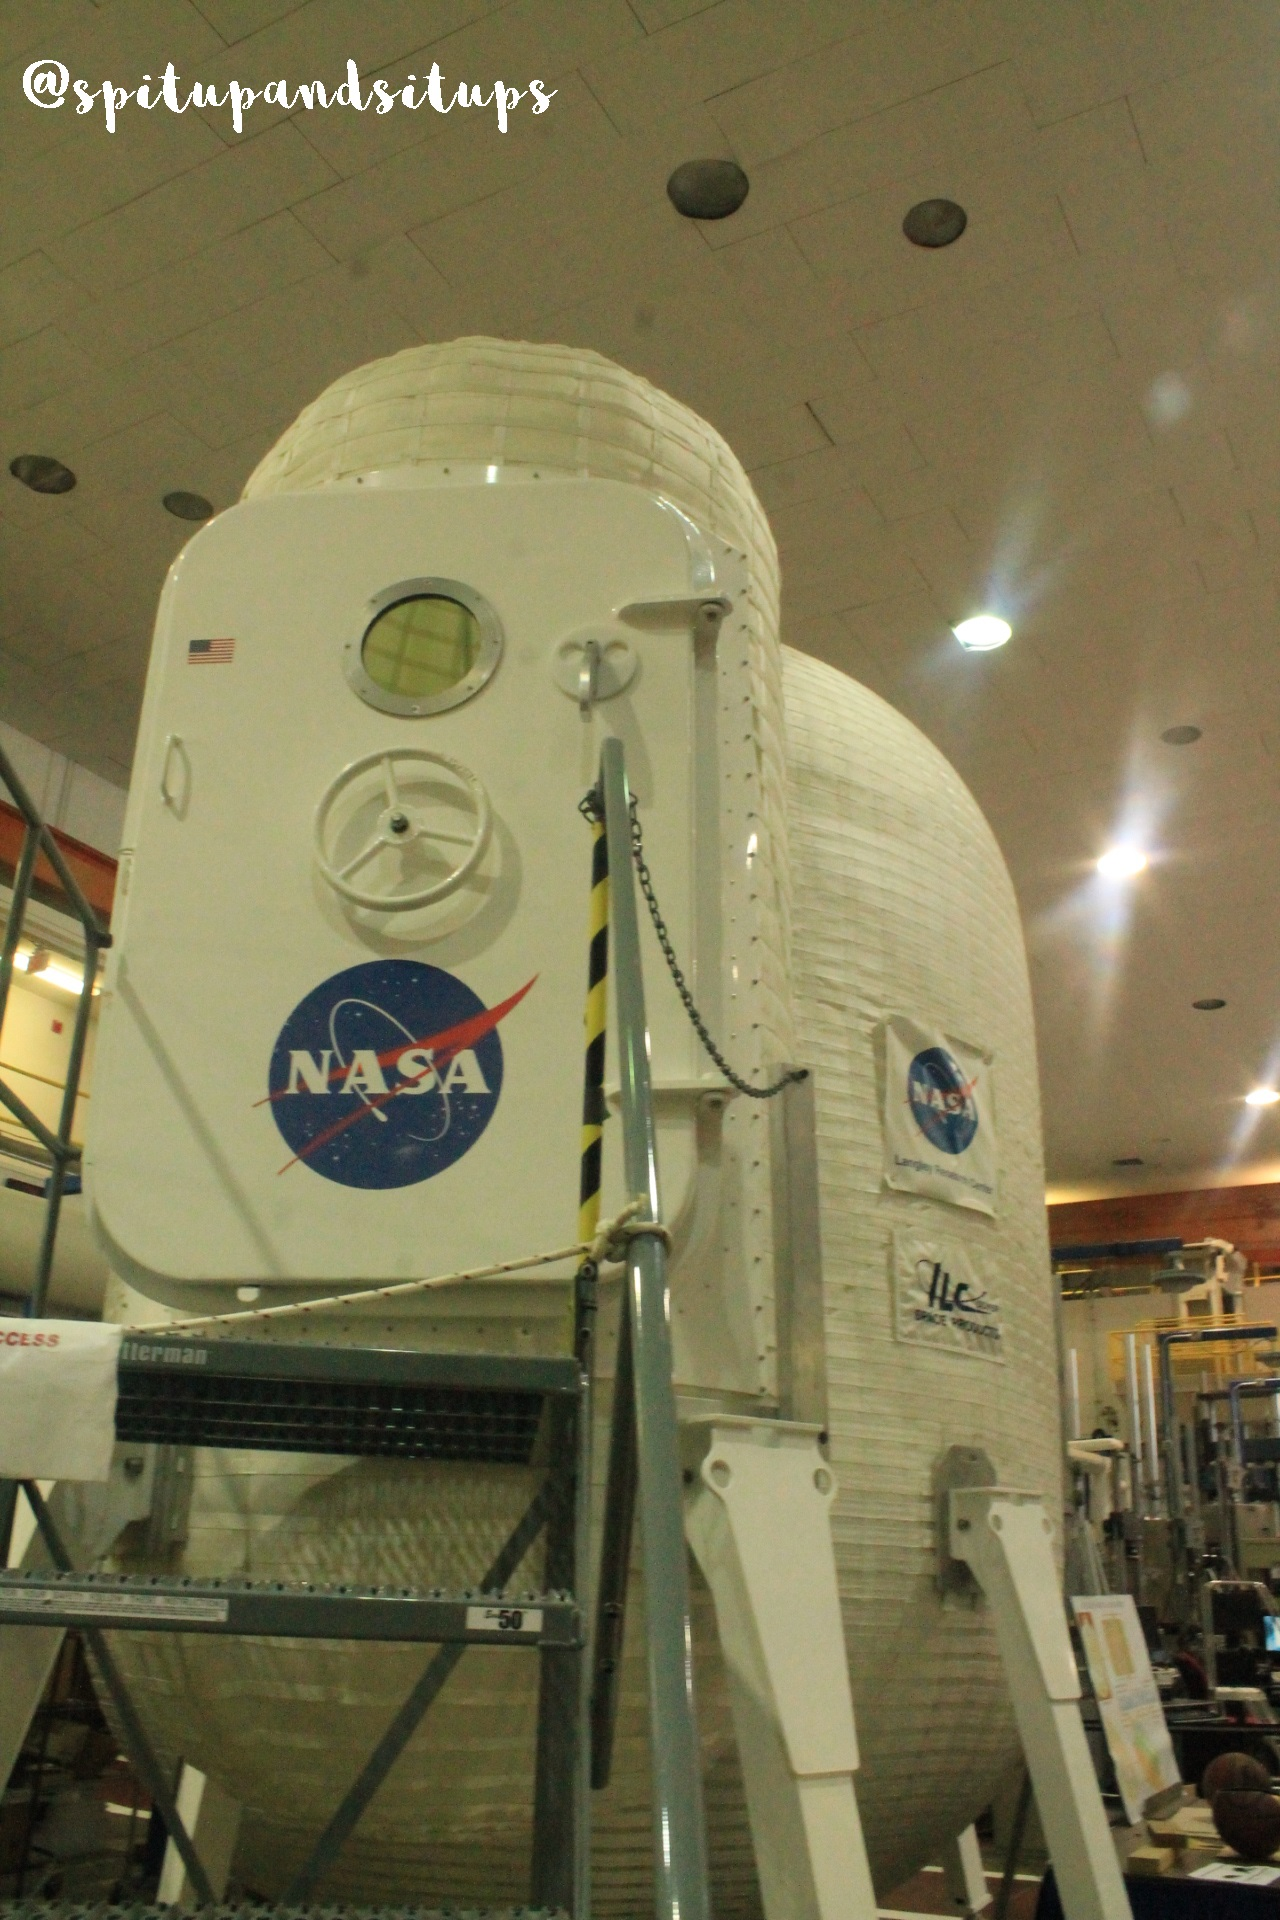 Inflatable Habitat at Langley Research Center